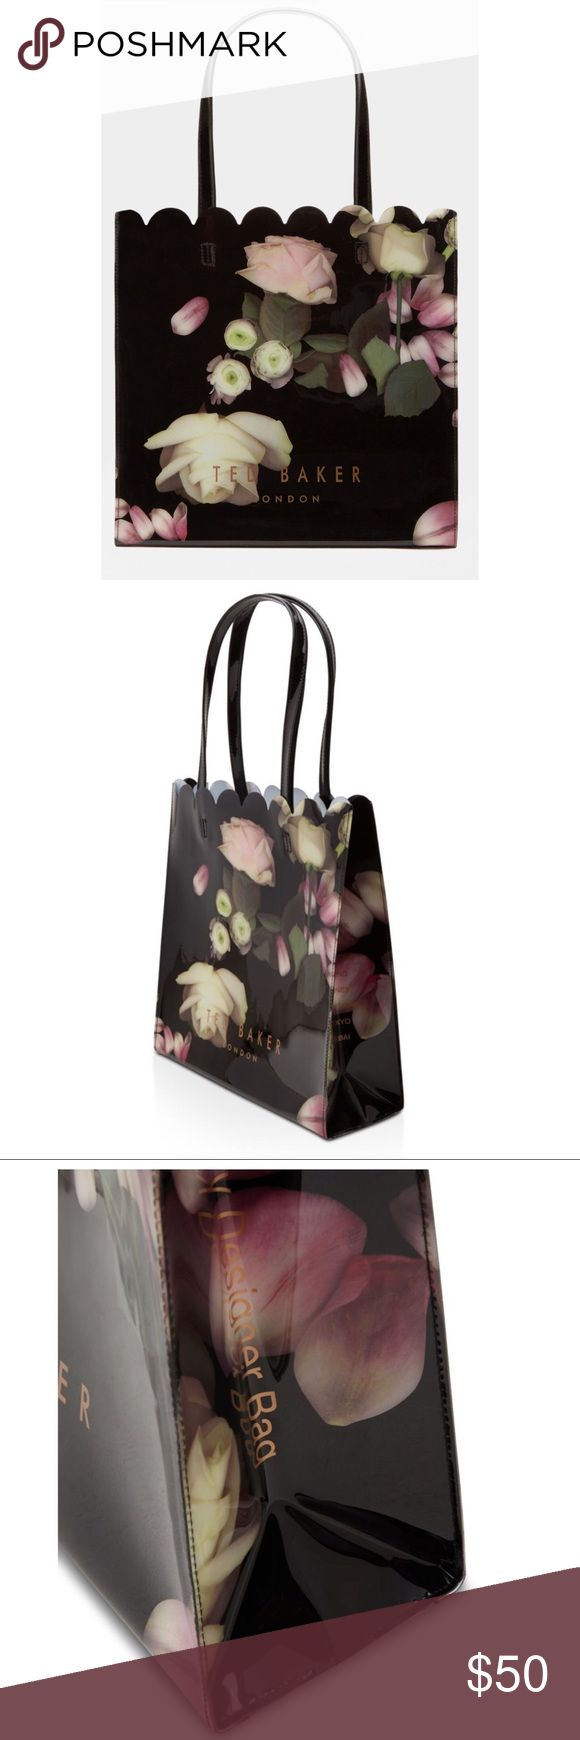 NWT Ted Baker Large Kensington Tote New with tags.  -Ted Baker accessories collection -Kensington Floral print -Scalloped trim -Two top handles -Ted Baker-branded -Dimensions: H34.5cm x W34.5cm x D13cm -Handle Drop: 22cm -Care & Fabric: -Fabric Content:  100% Polyvinyl chloride -Care information: Do not wash, iron or dry clean Ted Baker London Bags Totes